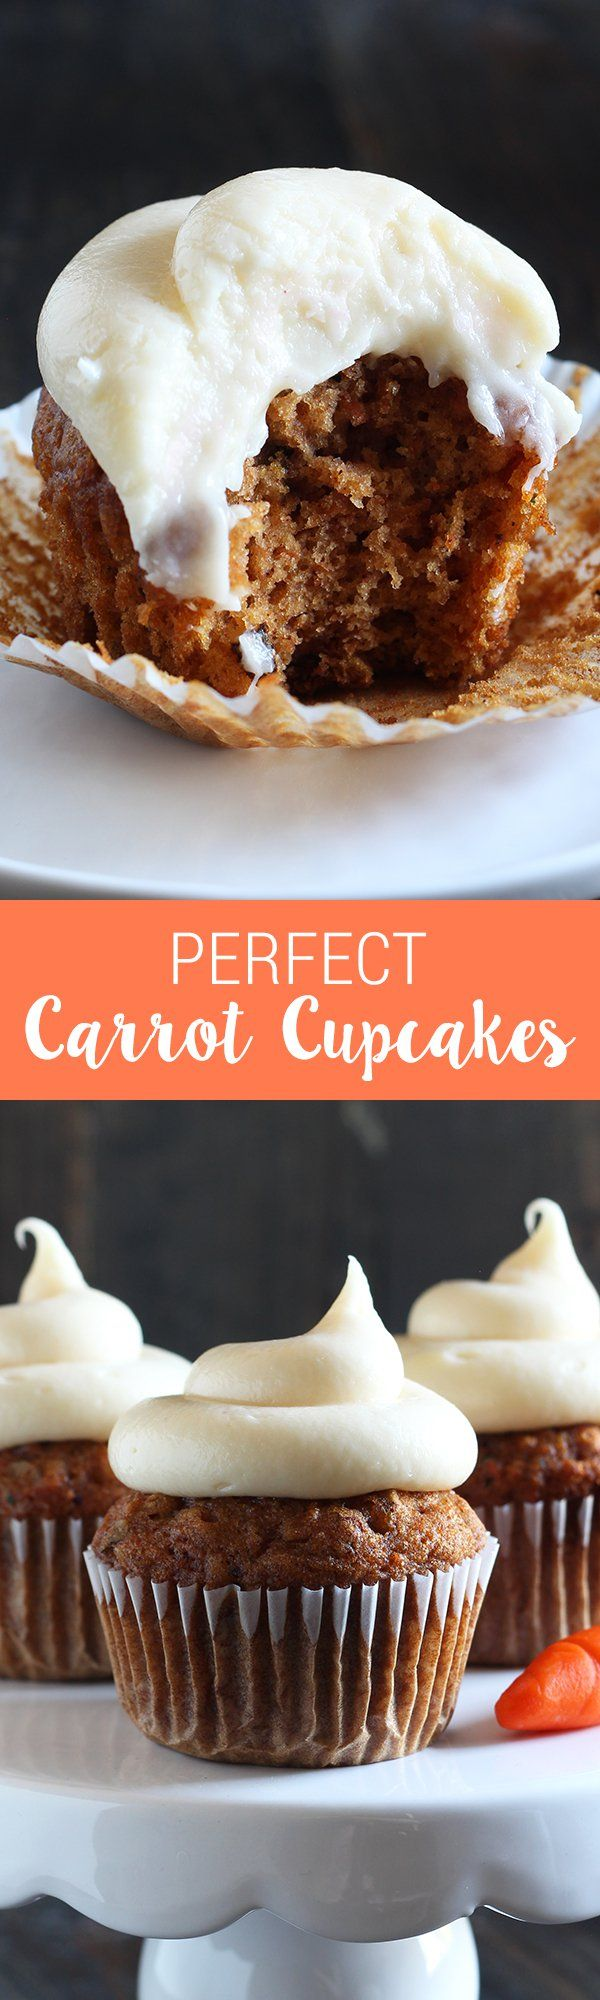 How To Make Perfect Carrot Cupcakes That Are So Flavorful, Moist, And  Delightful That